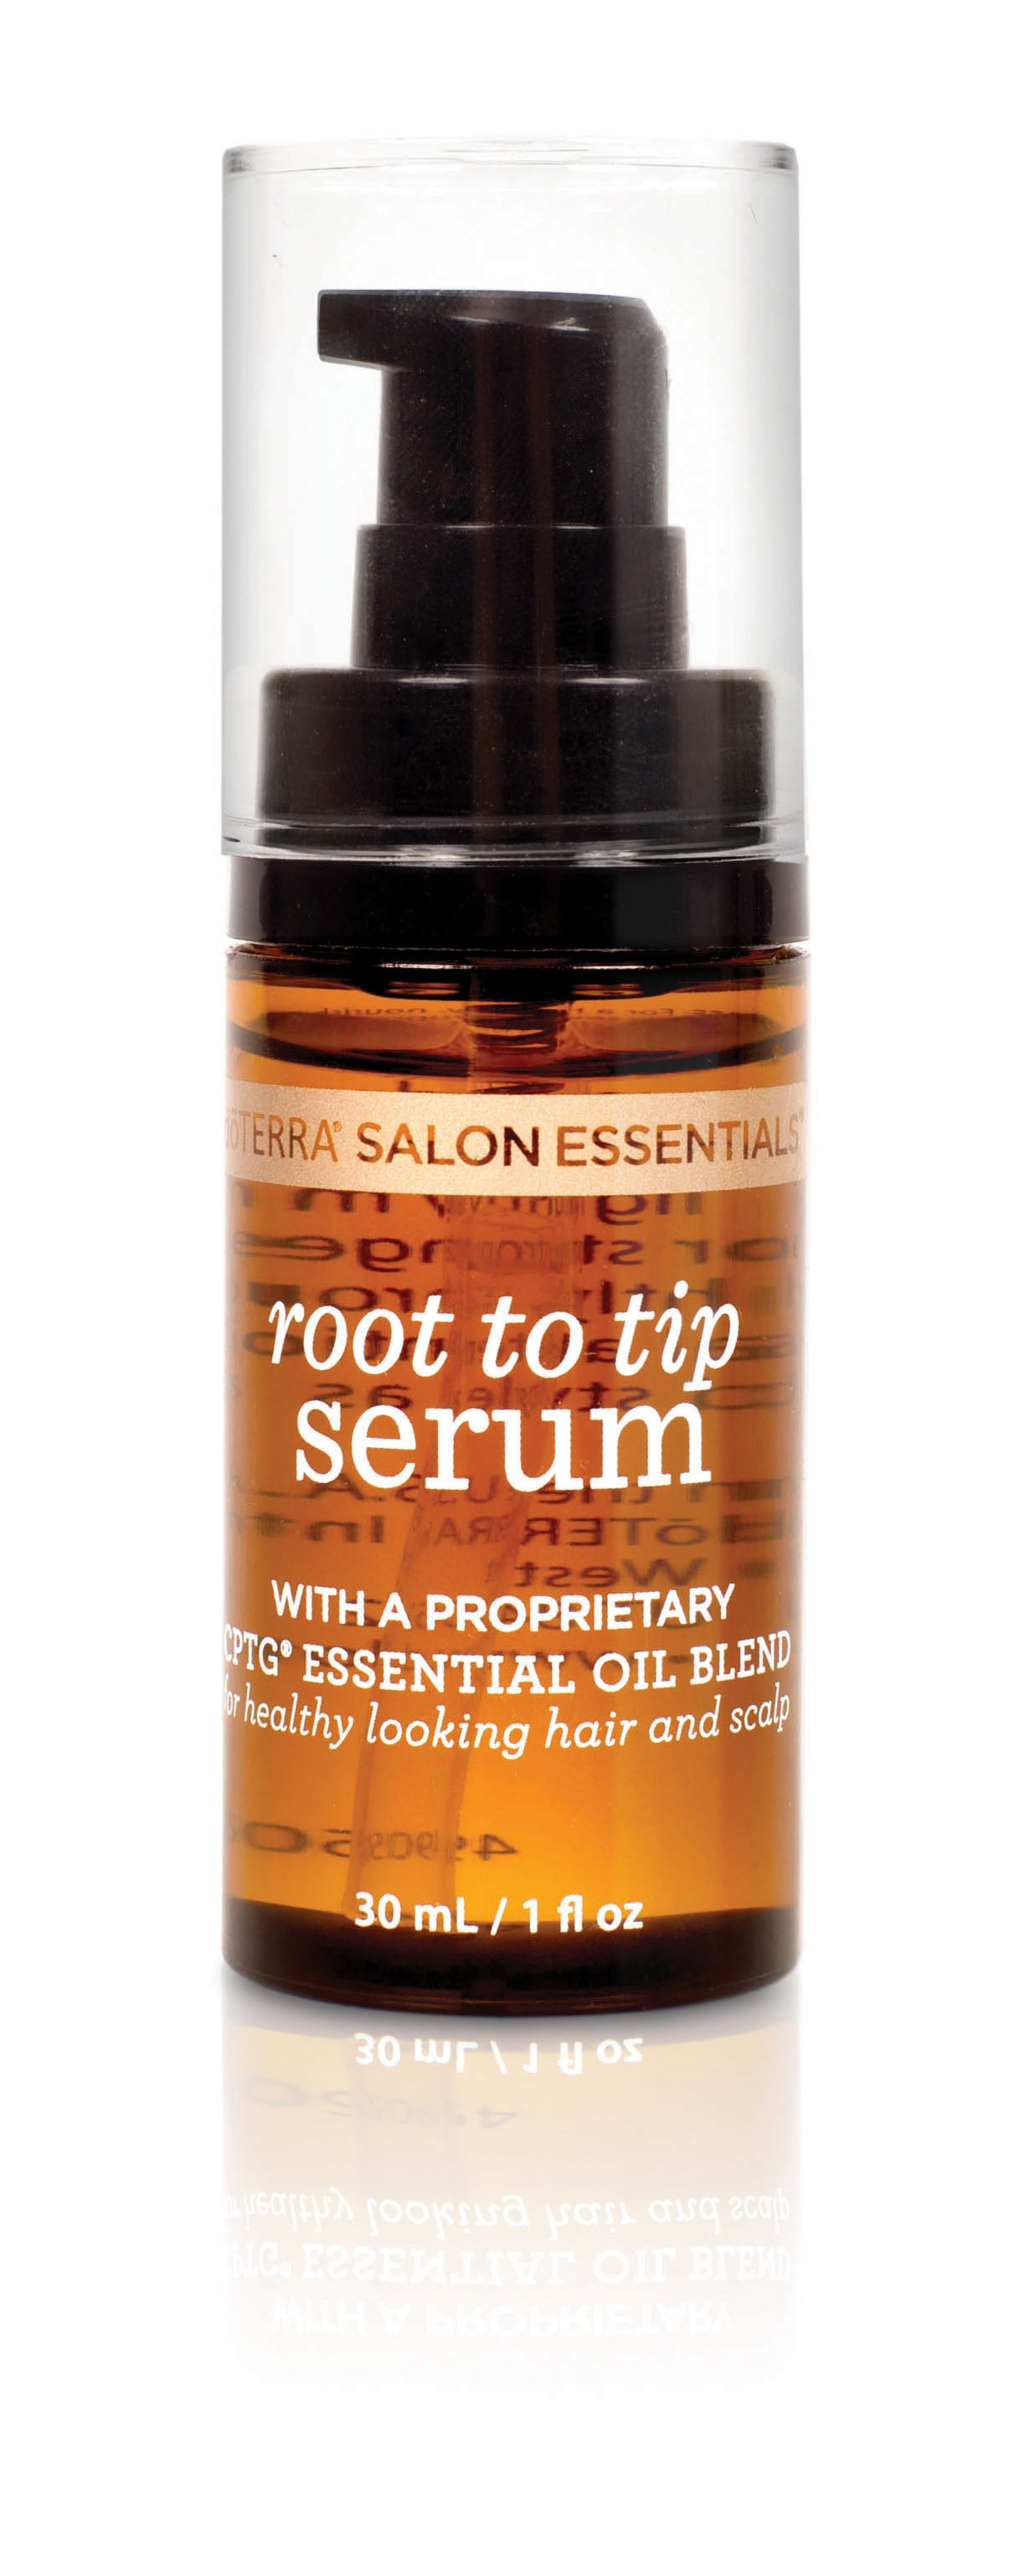 dōTERRA Salon Essentials® Root to Tip Serum